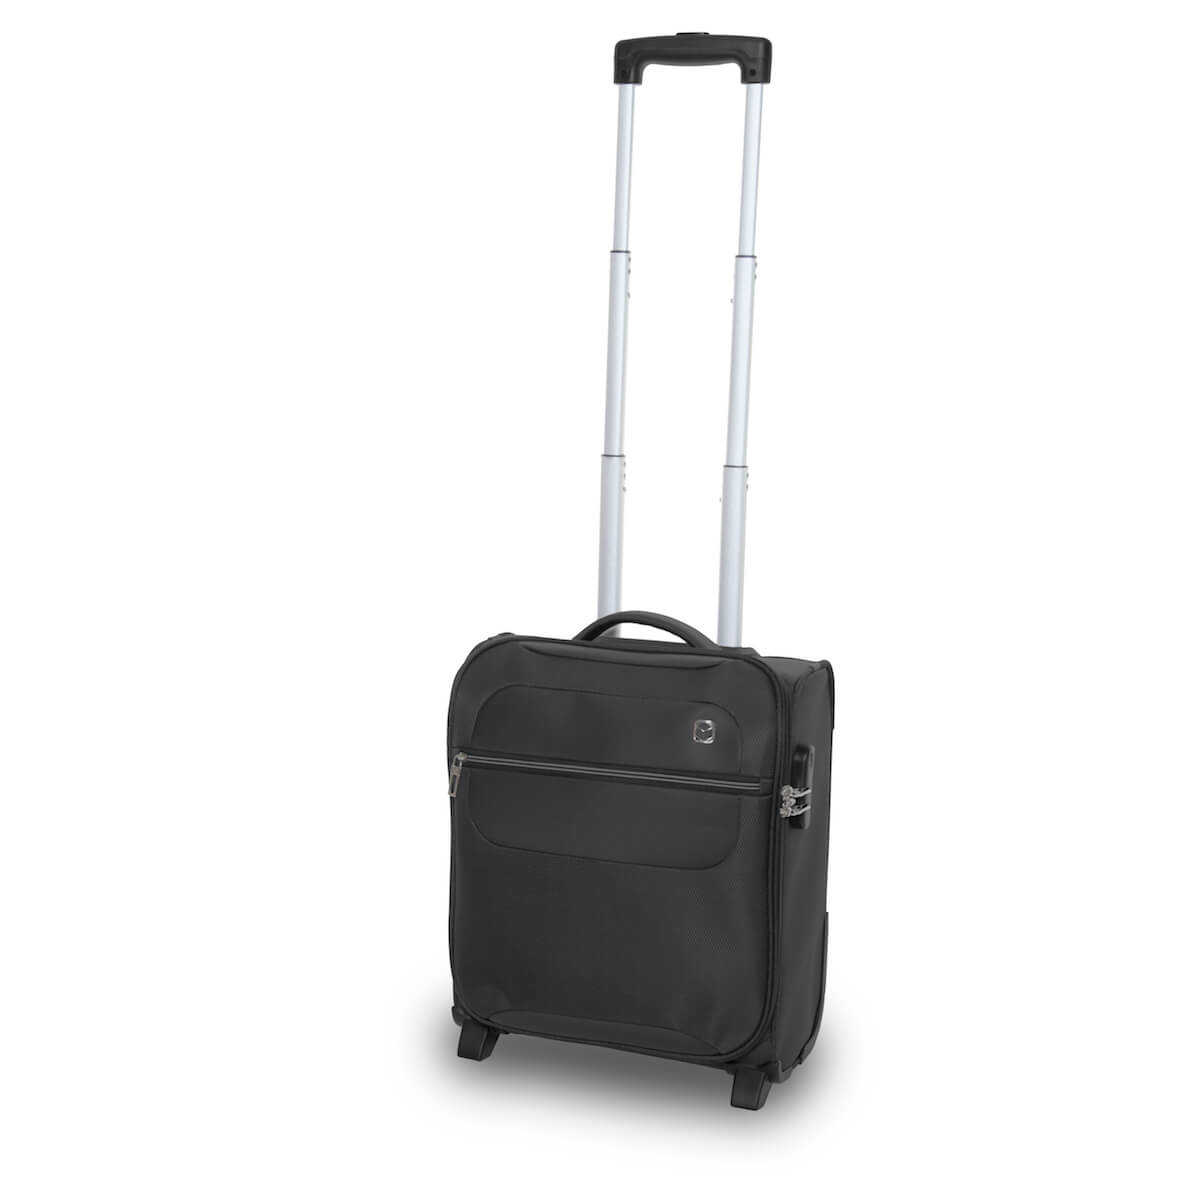 QUBEd Mode 2-Wheel Upright Under Seat Cabin Case